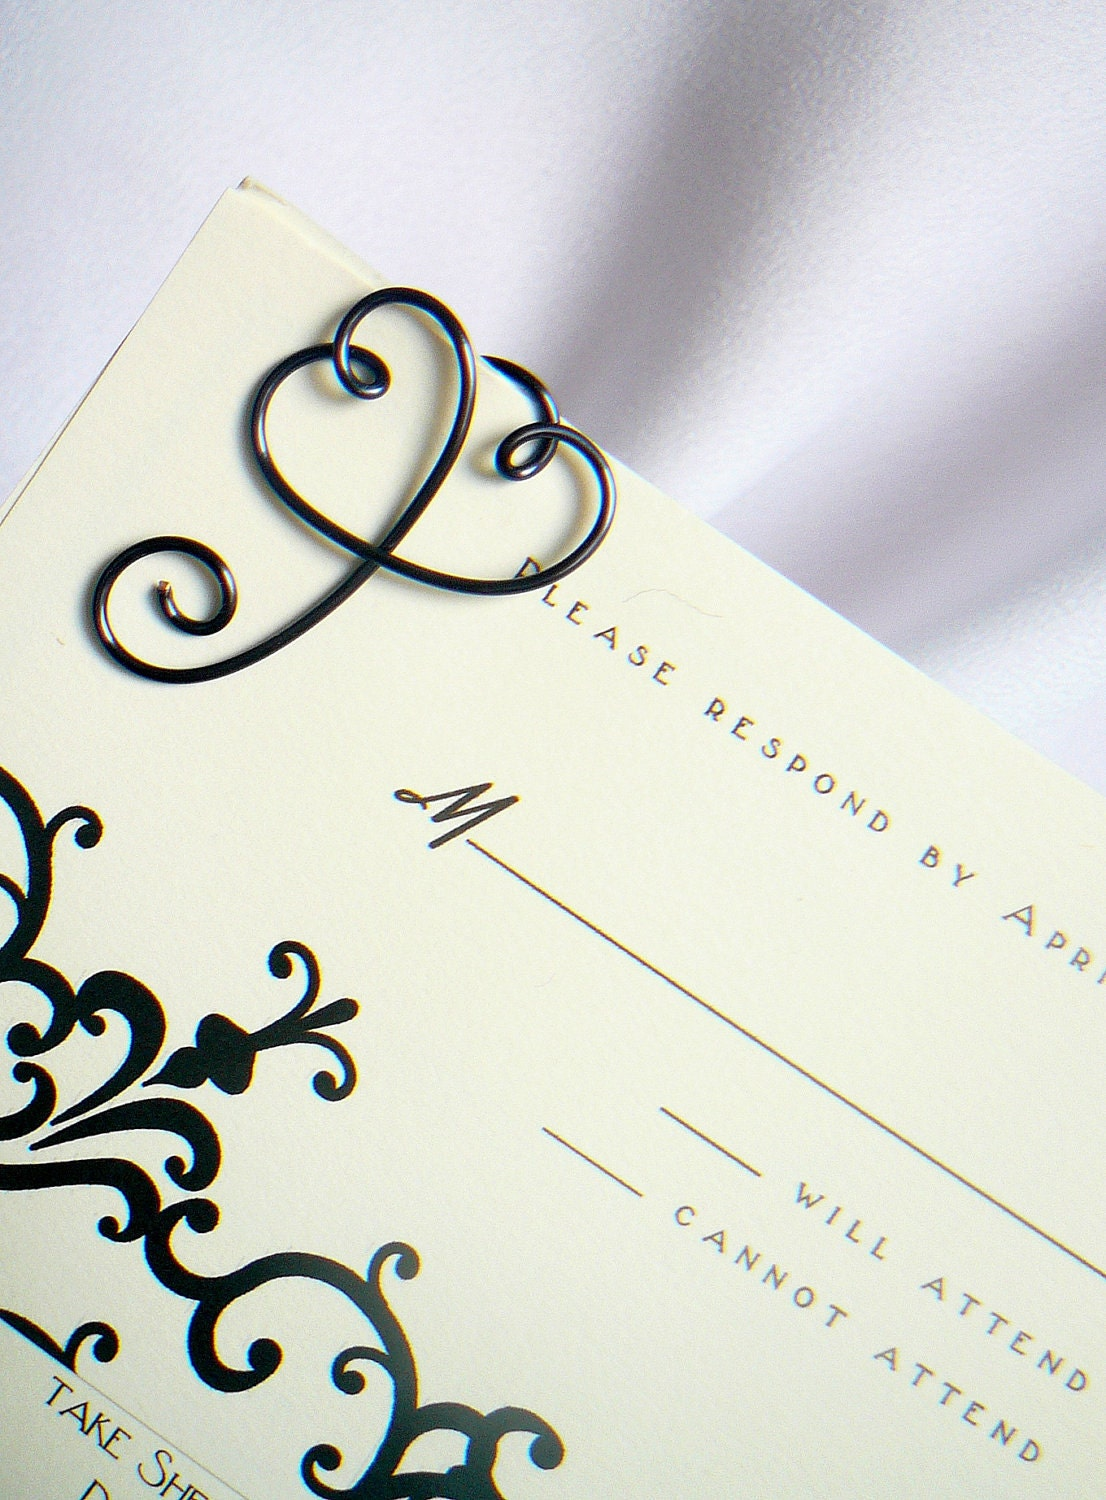 invitation lovee elegant fastener for invitation paper With paper fasteners wedding invitations